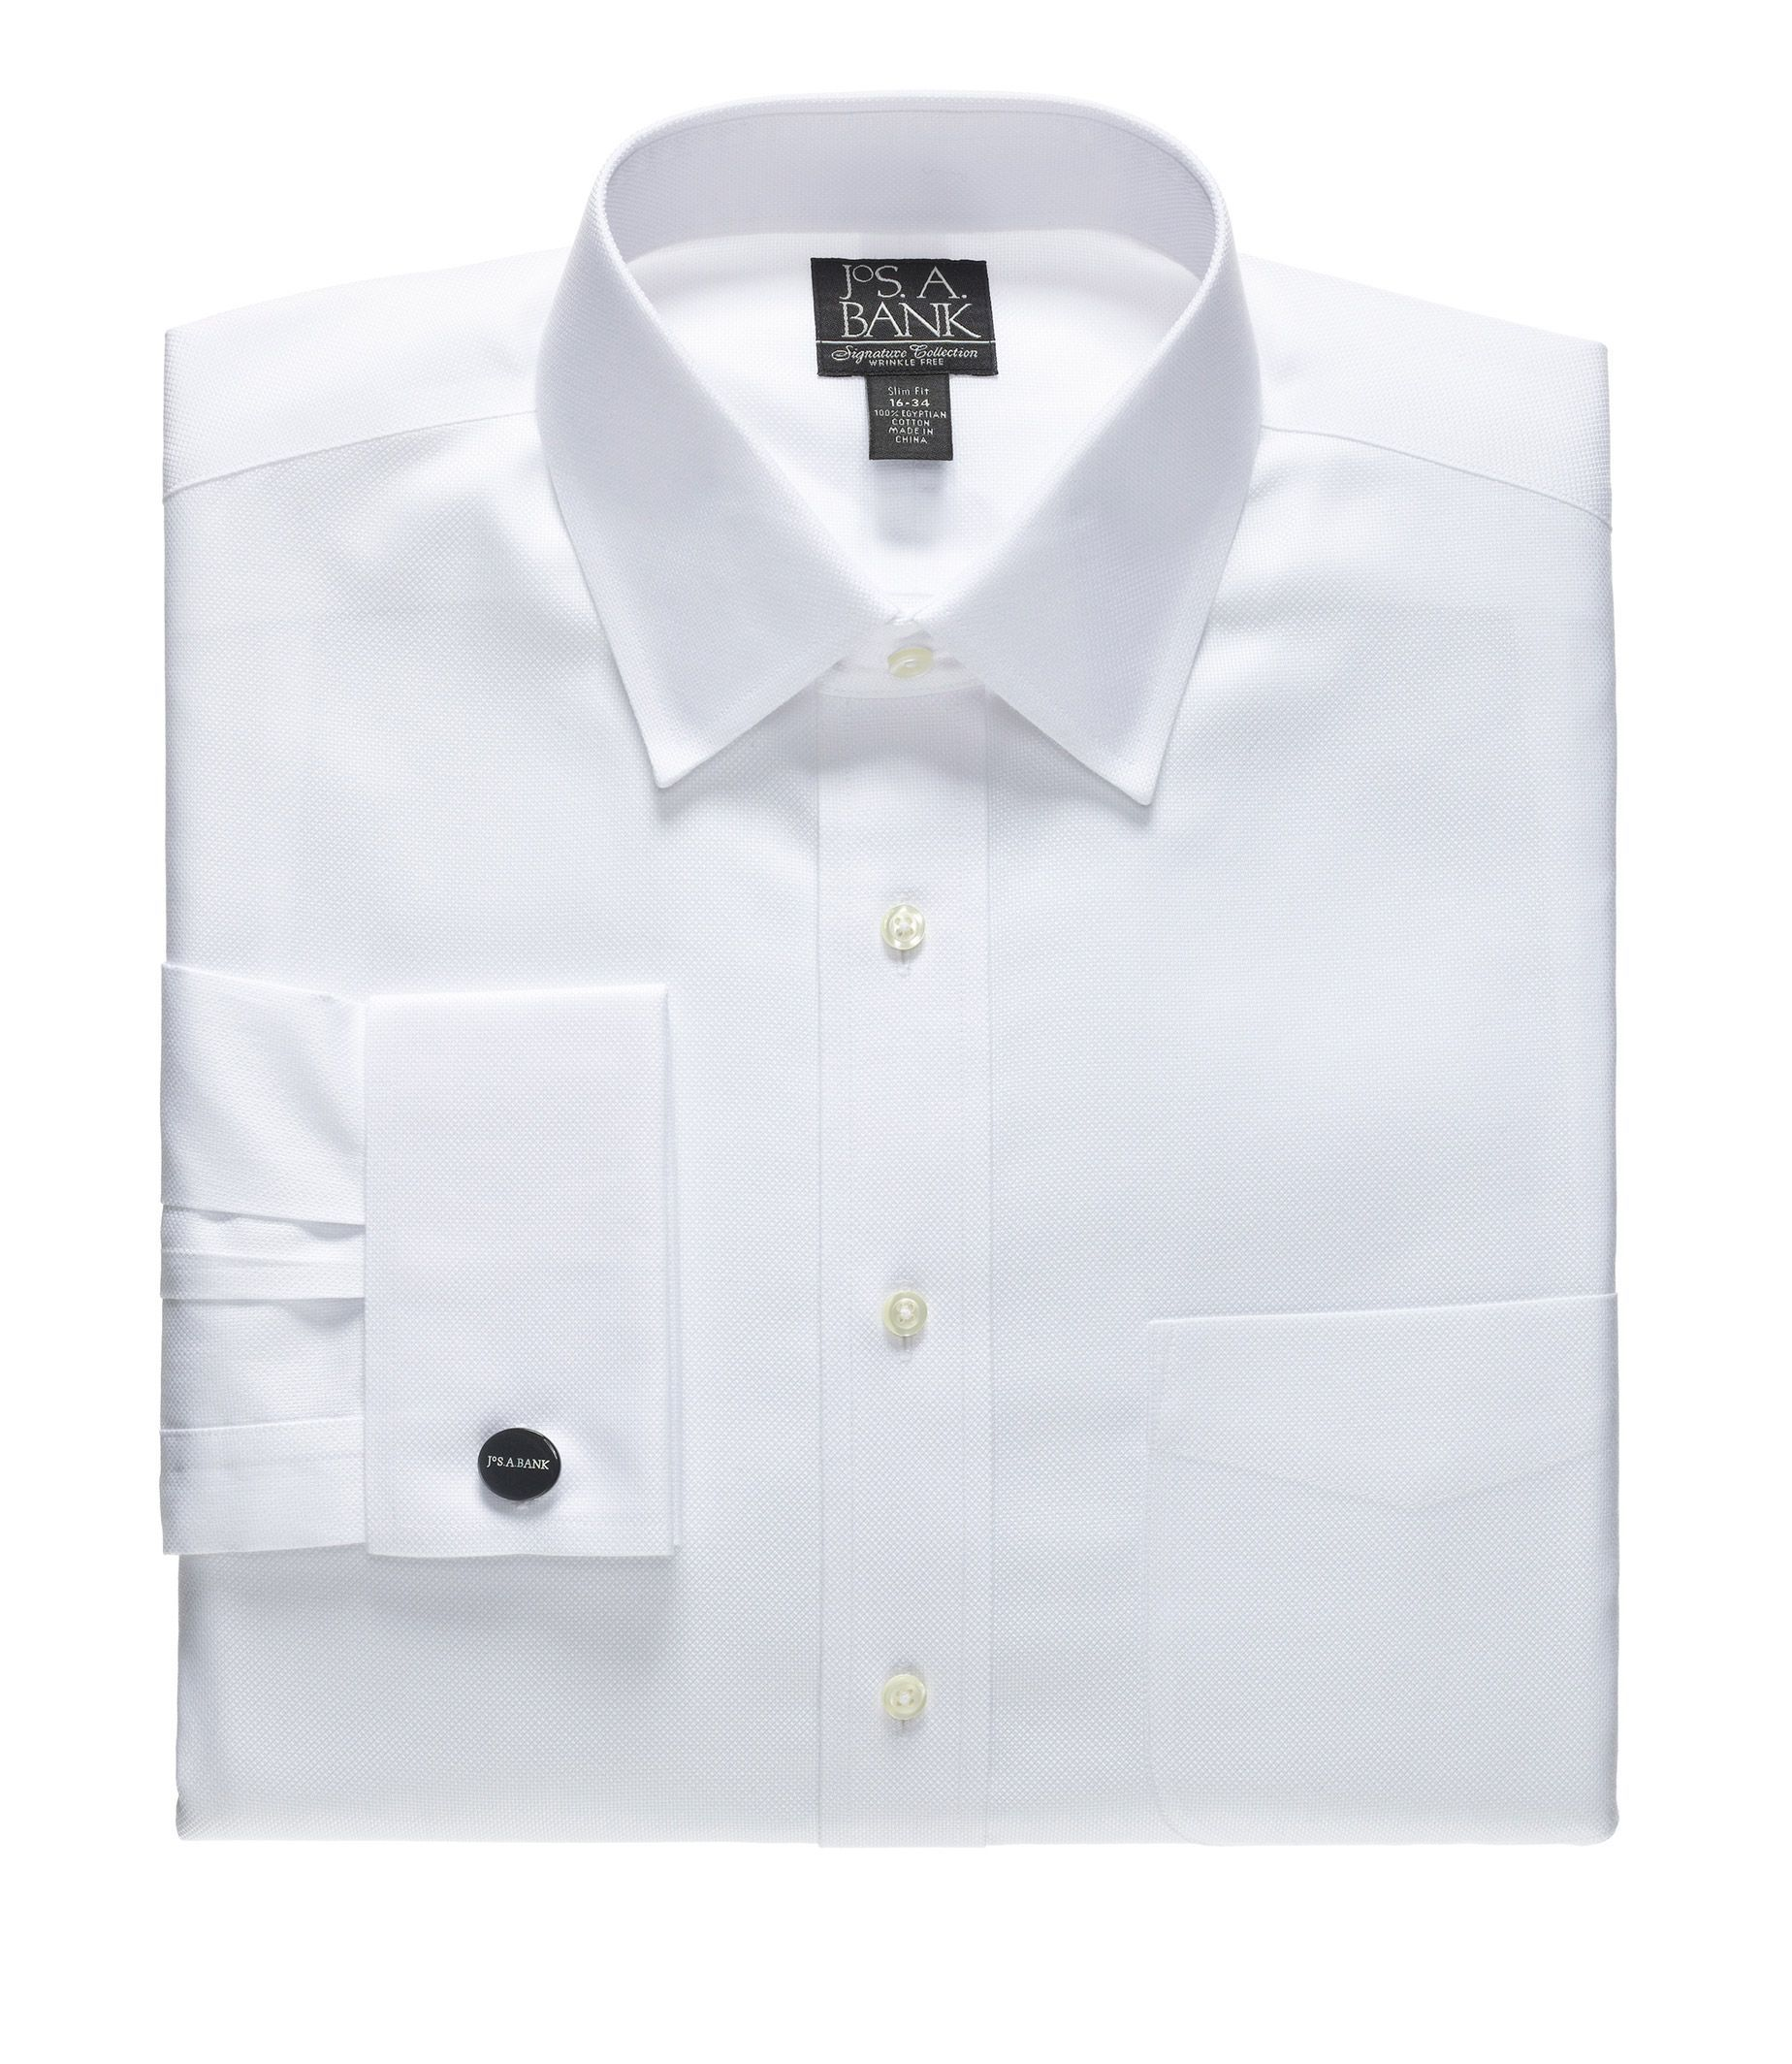 Signiture Slim Fit Spread Collar French Cuff Royal Oxford Dress Shirt